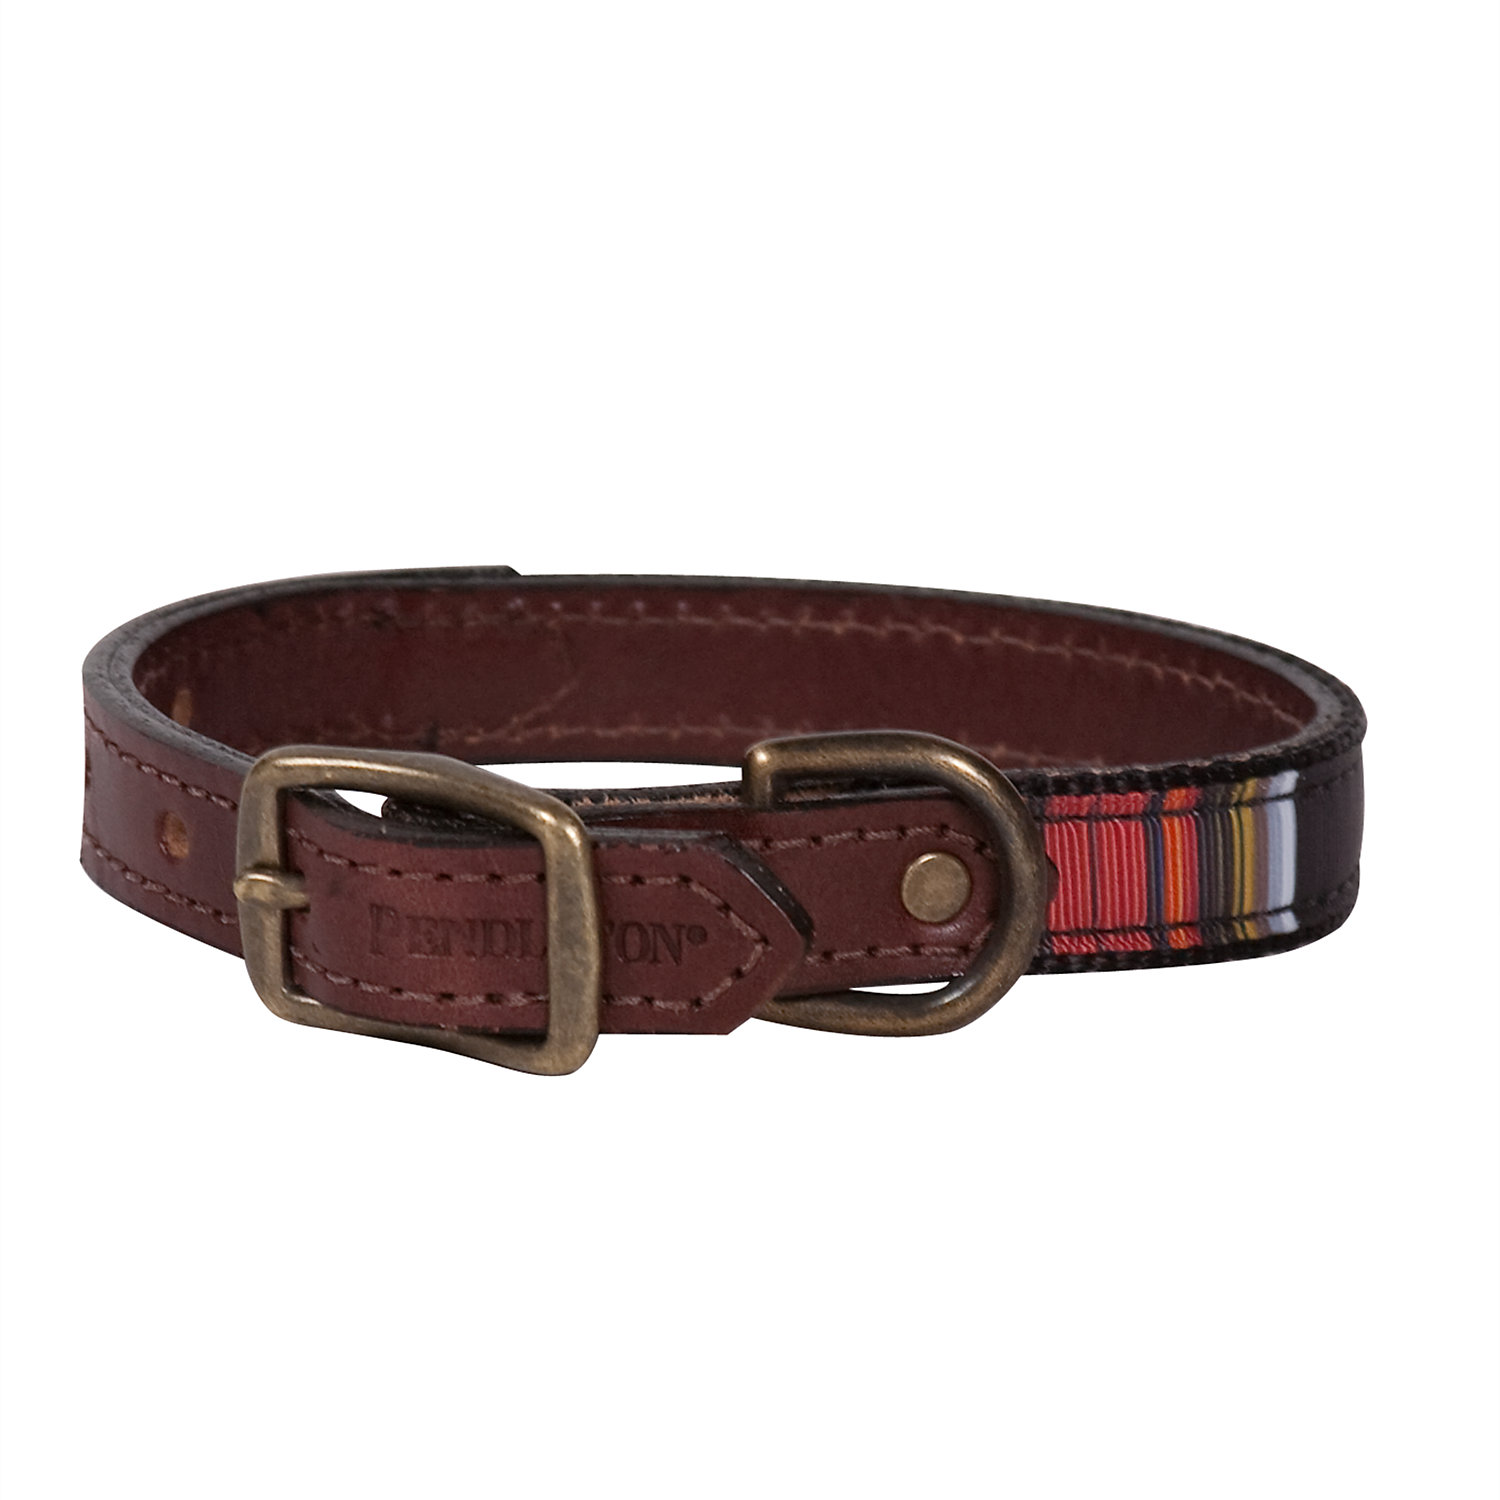 Pendleton Acadia National Park Explorer Dog Collar Small